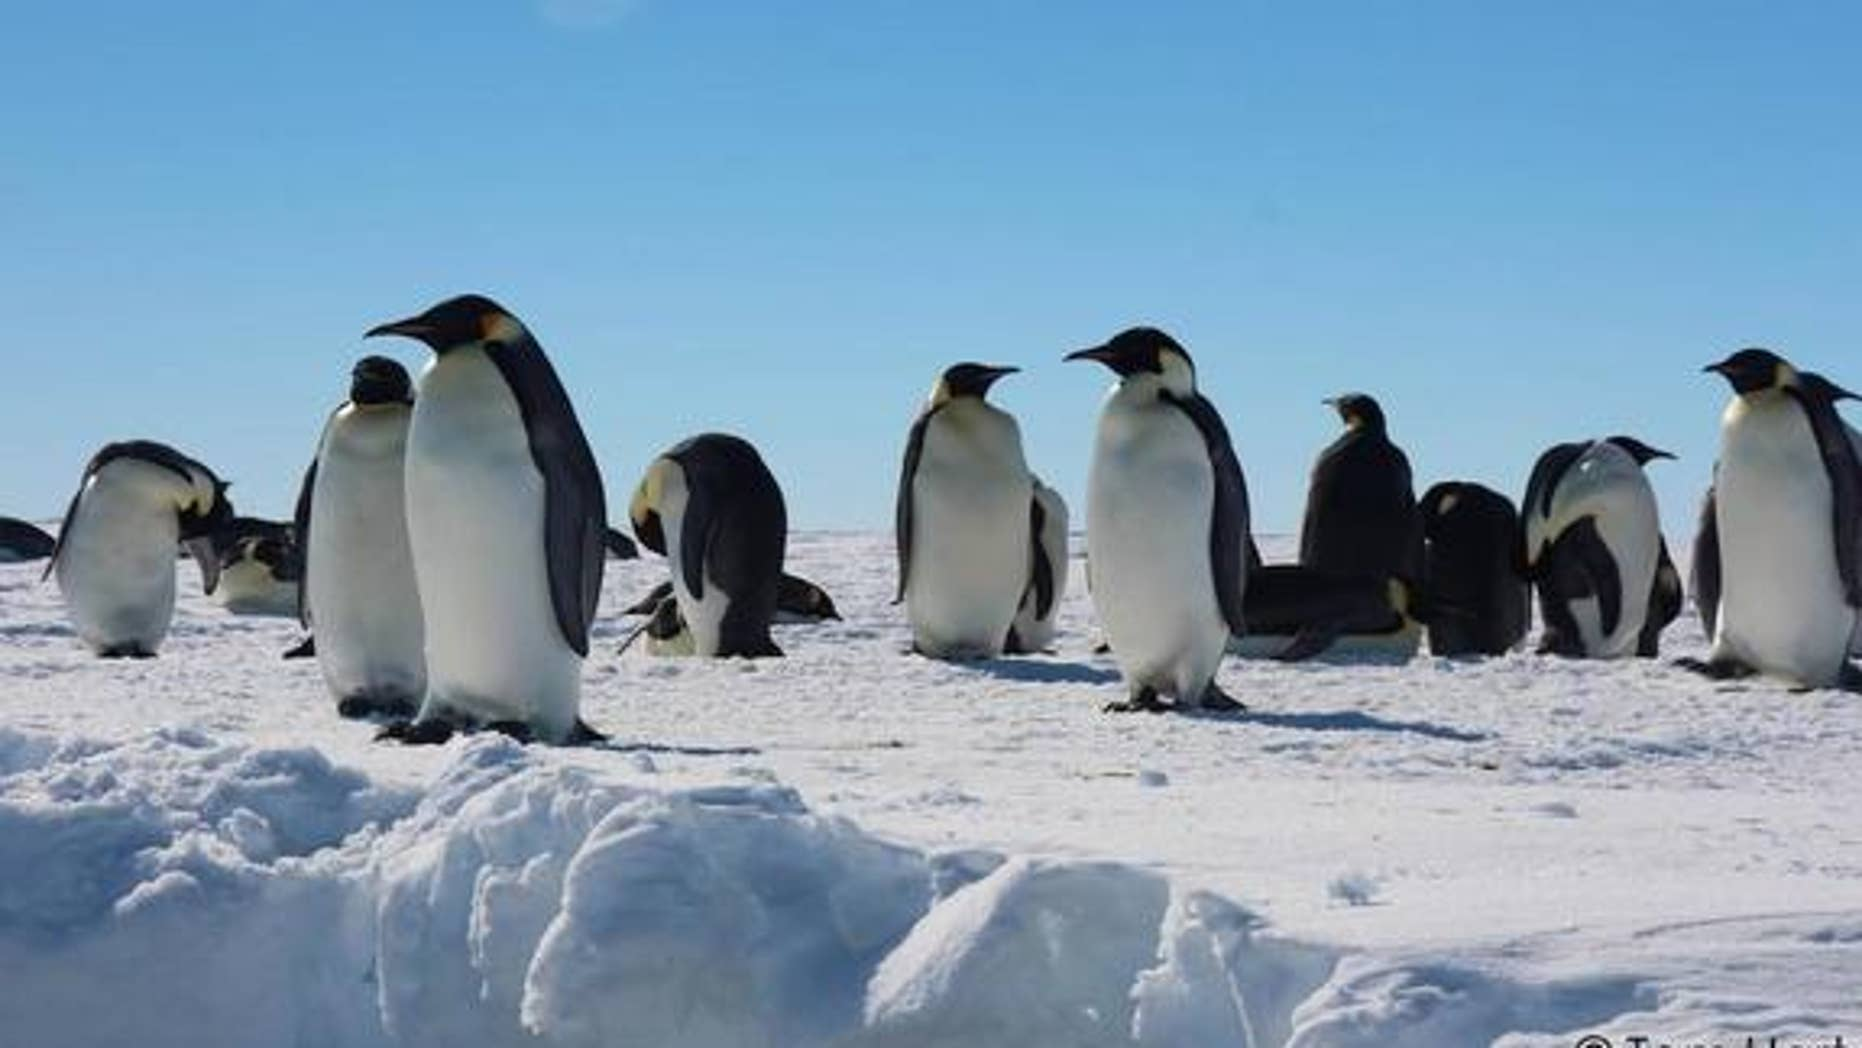 Emperor penguins in the Gould Bay colony preen and rest on the snowy ice.